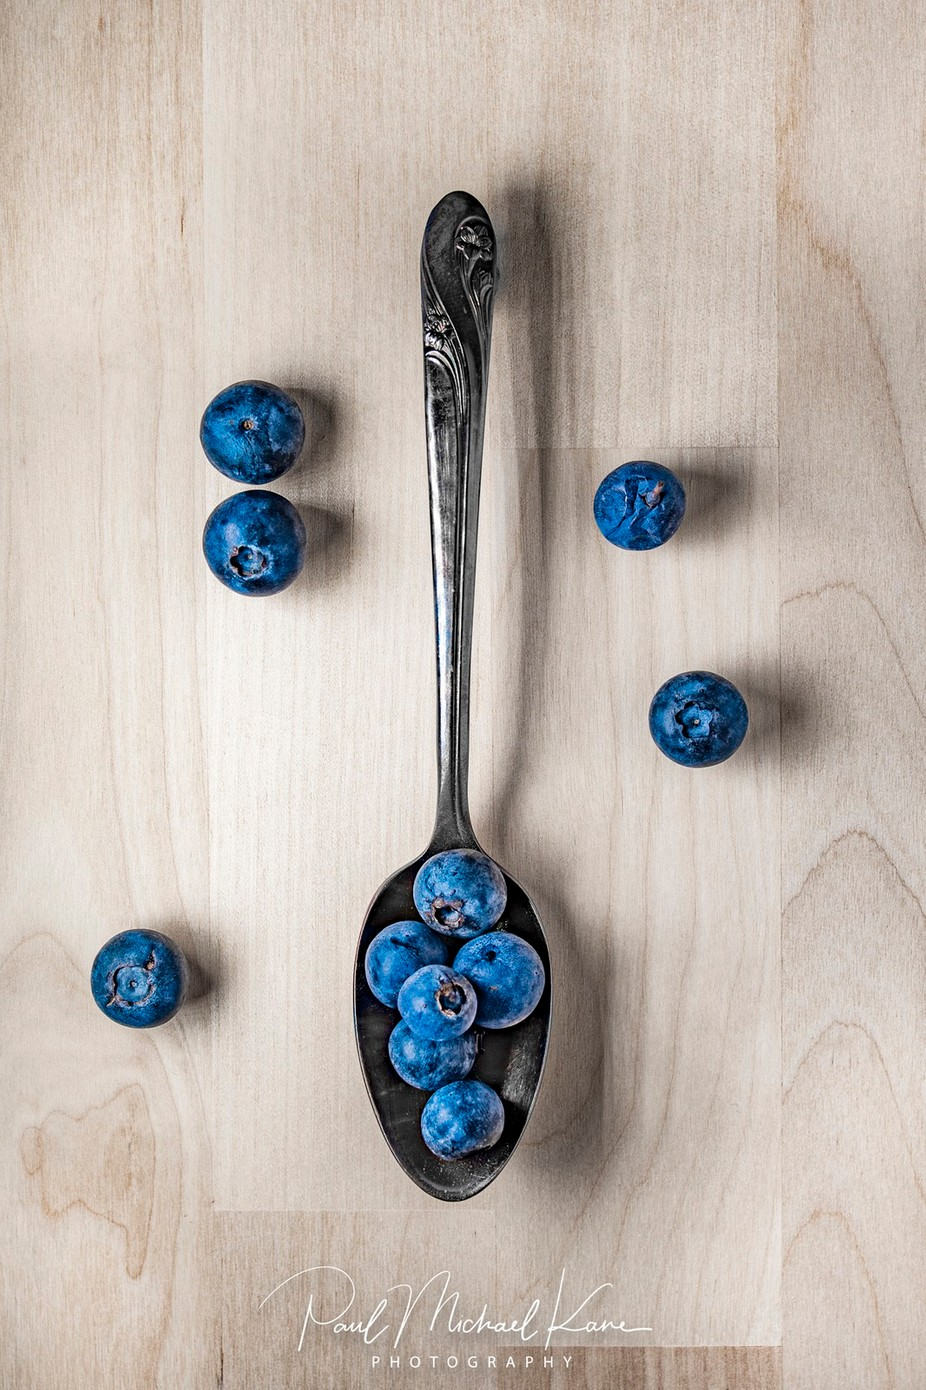 Blueberries by pmkane - Delicious Photo Contest